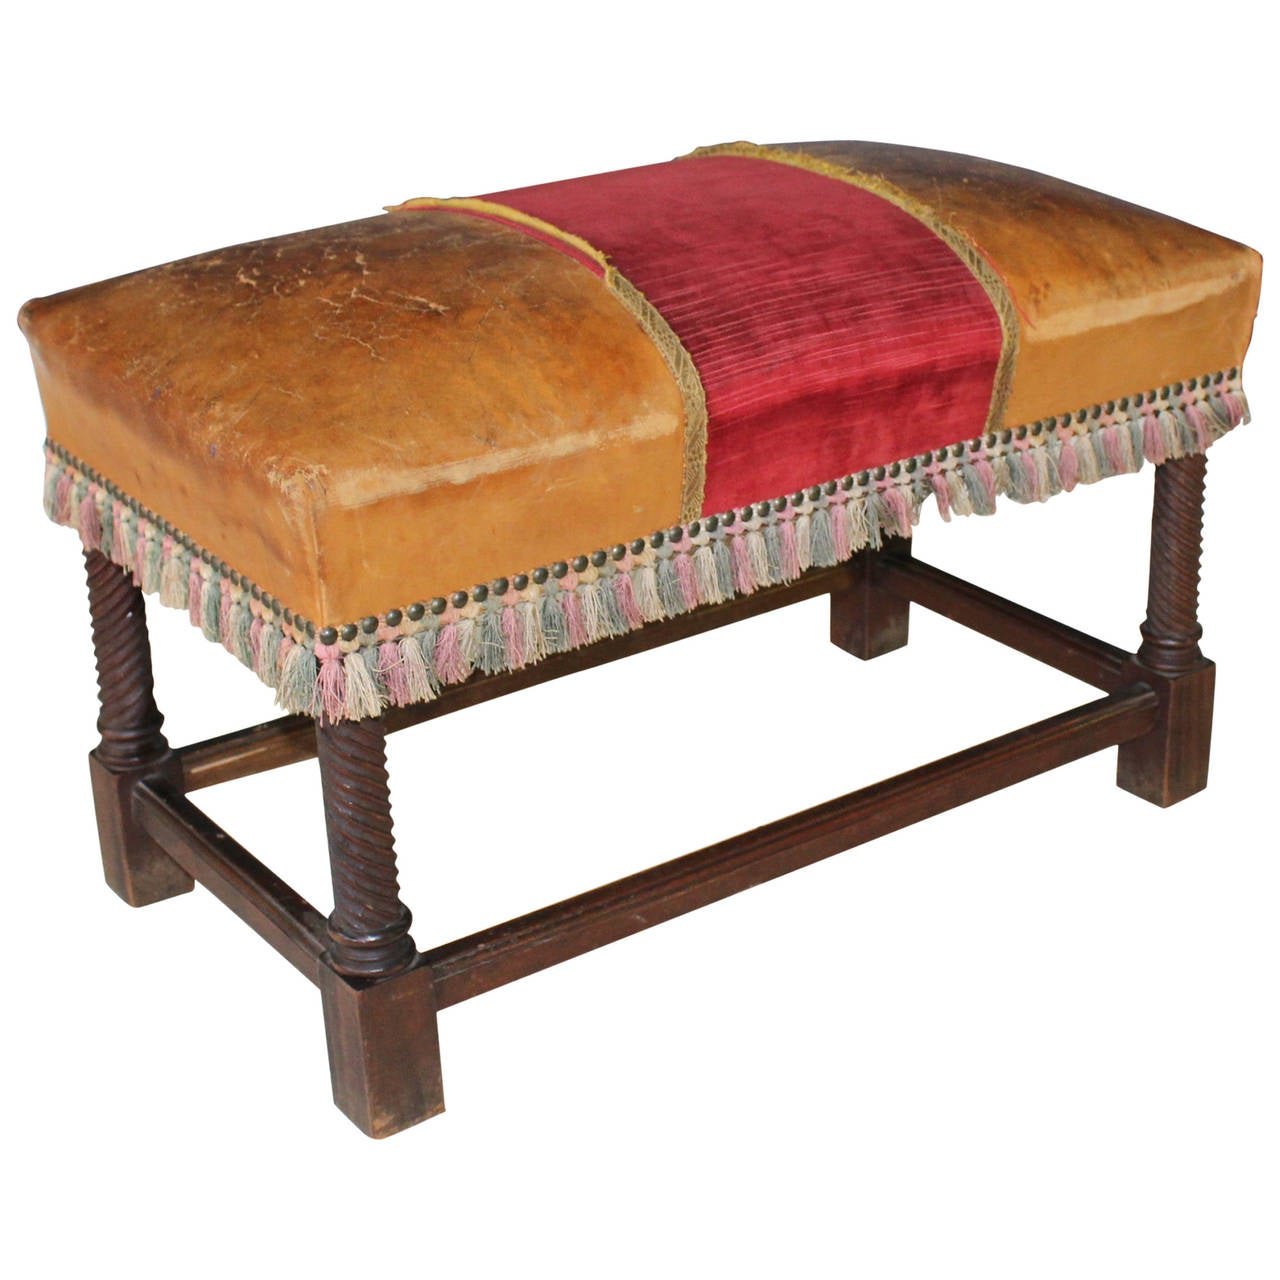 Leather upholstered walnut bench at 1stdibs for Leather daybed bench